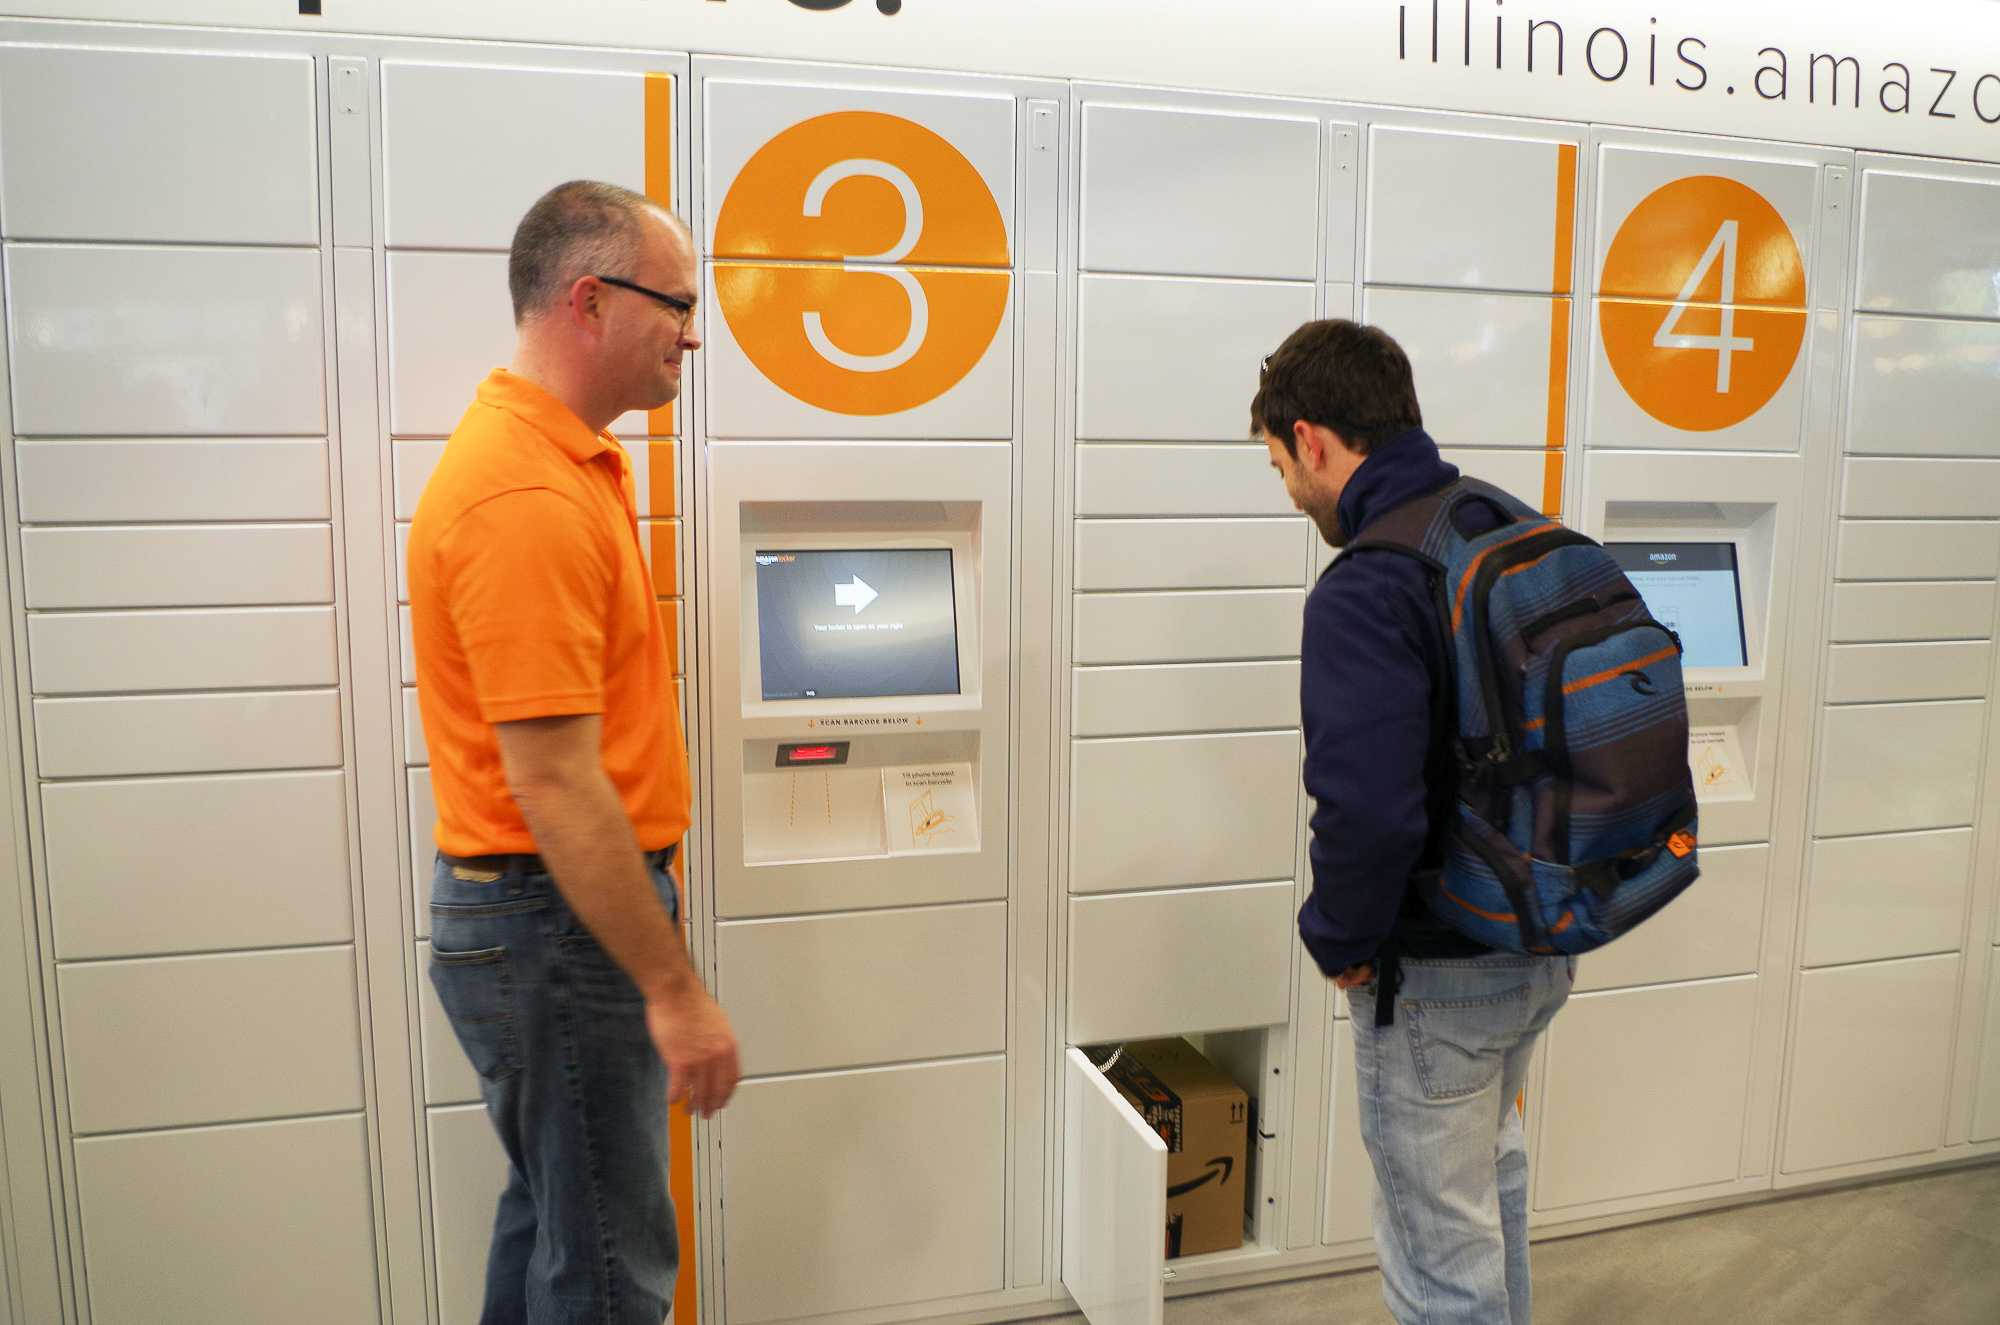 Amazon Employees show customers how to use the easy, and fast, Amazon Pick up services located in the Illini Union Bookstore. All you need is your mobile device and code from Amazon to access the locker with your package inside. The pick up location's Grand Opening was on Wednesday, November 16th.